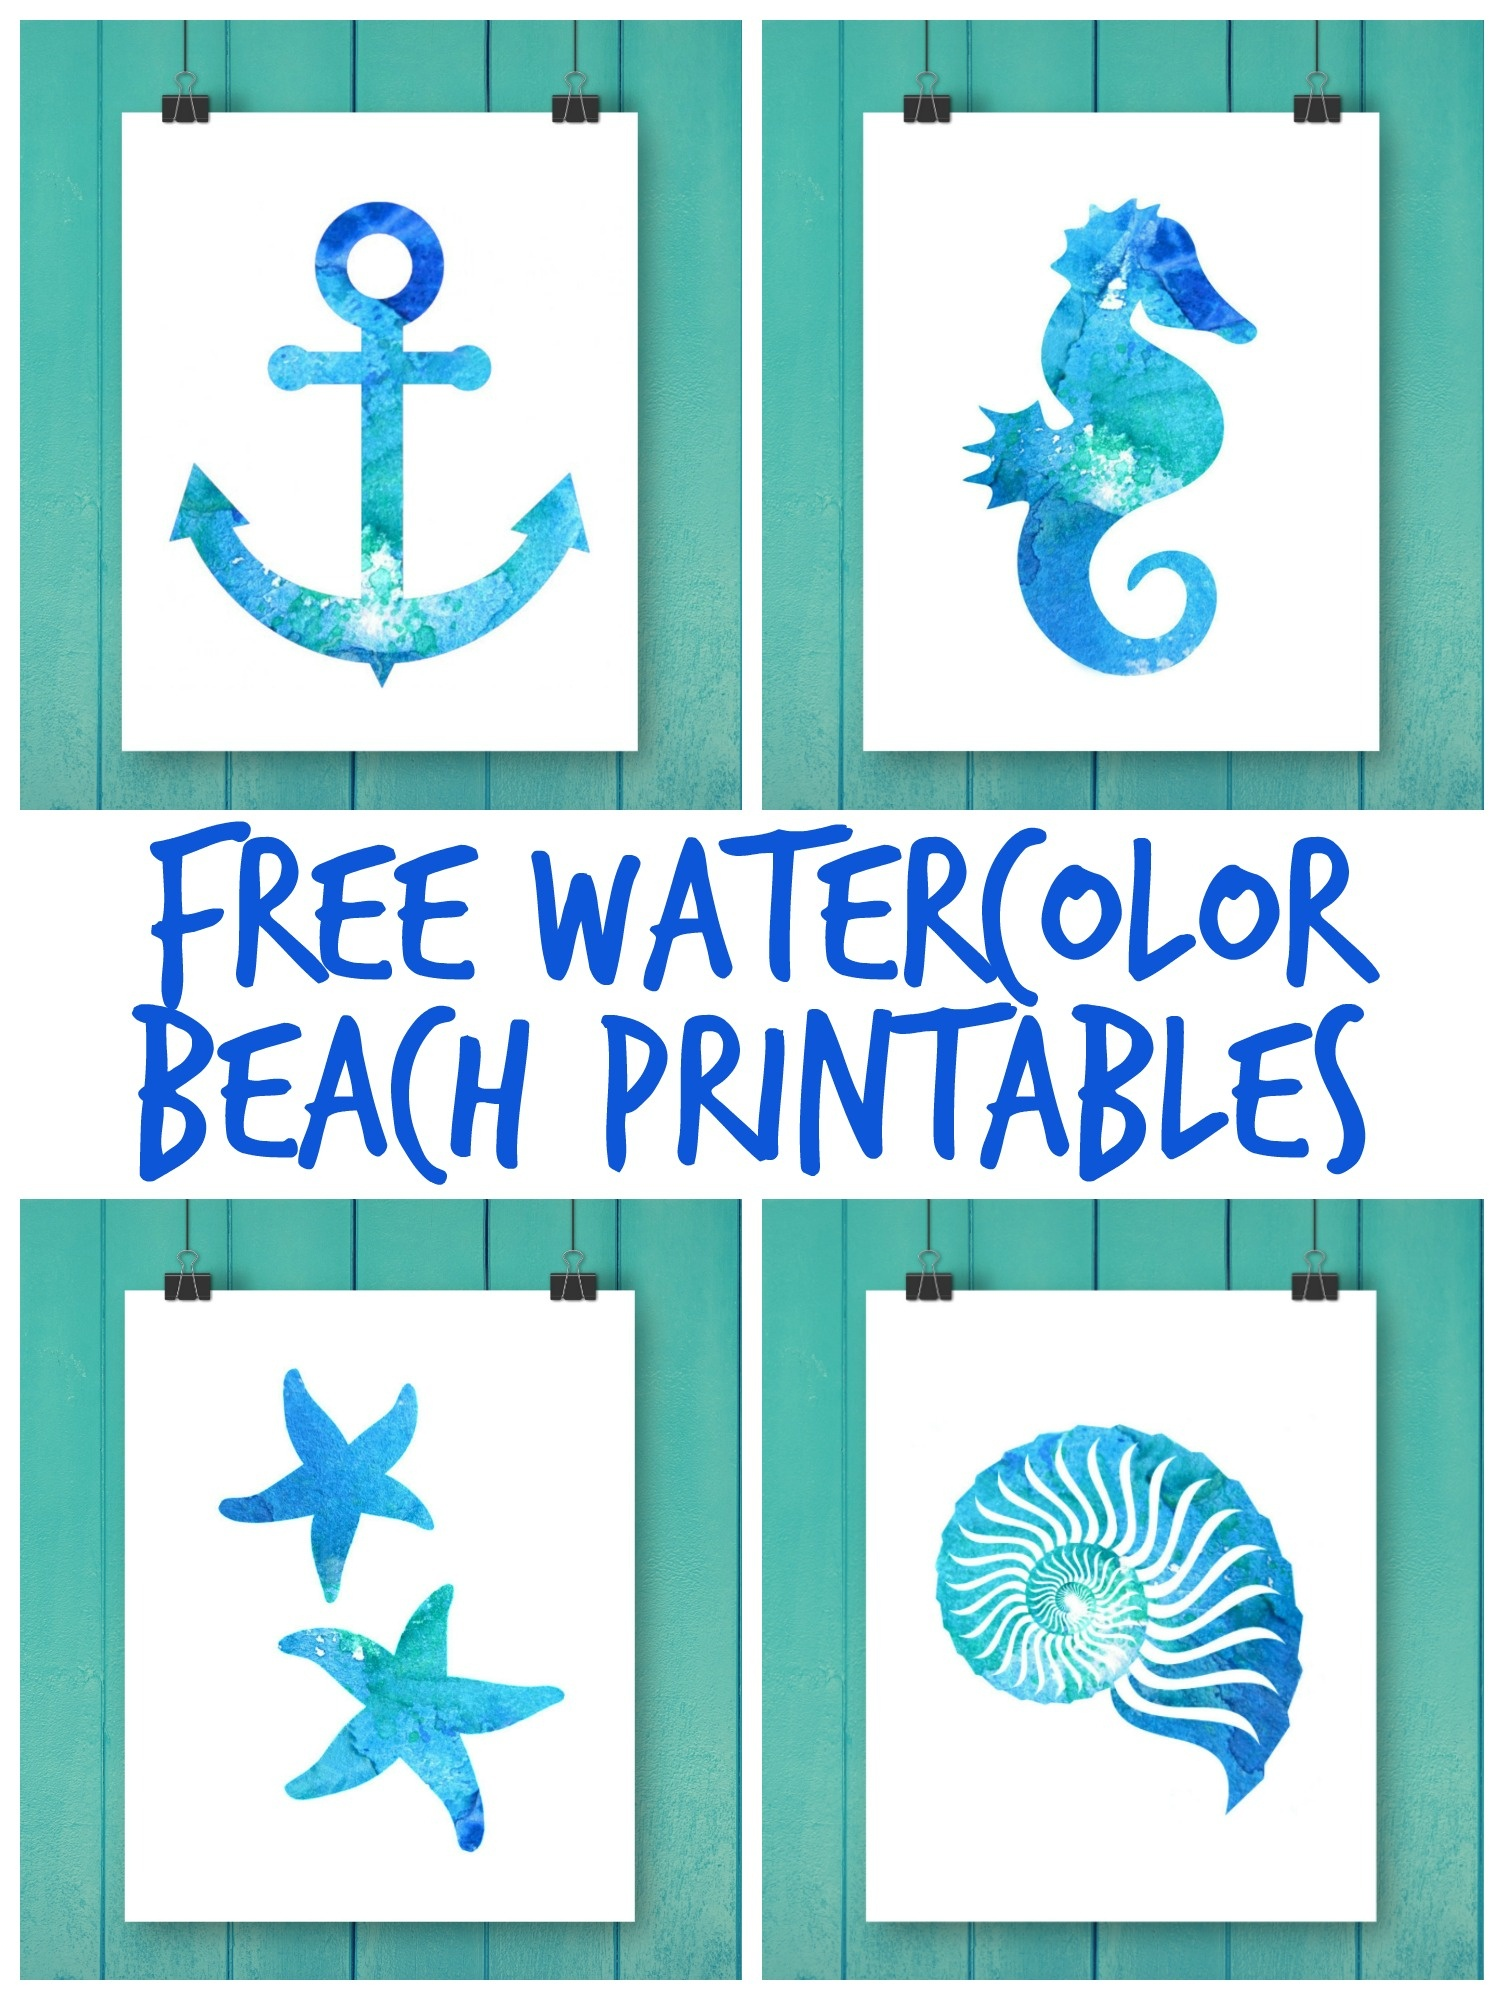 Free Watercolor Beach Printables - Free Printable Beach Pictures